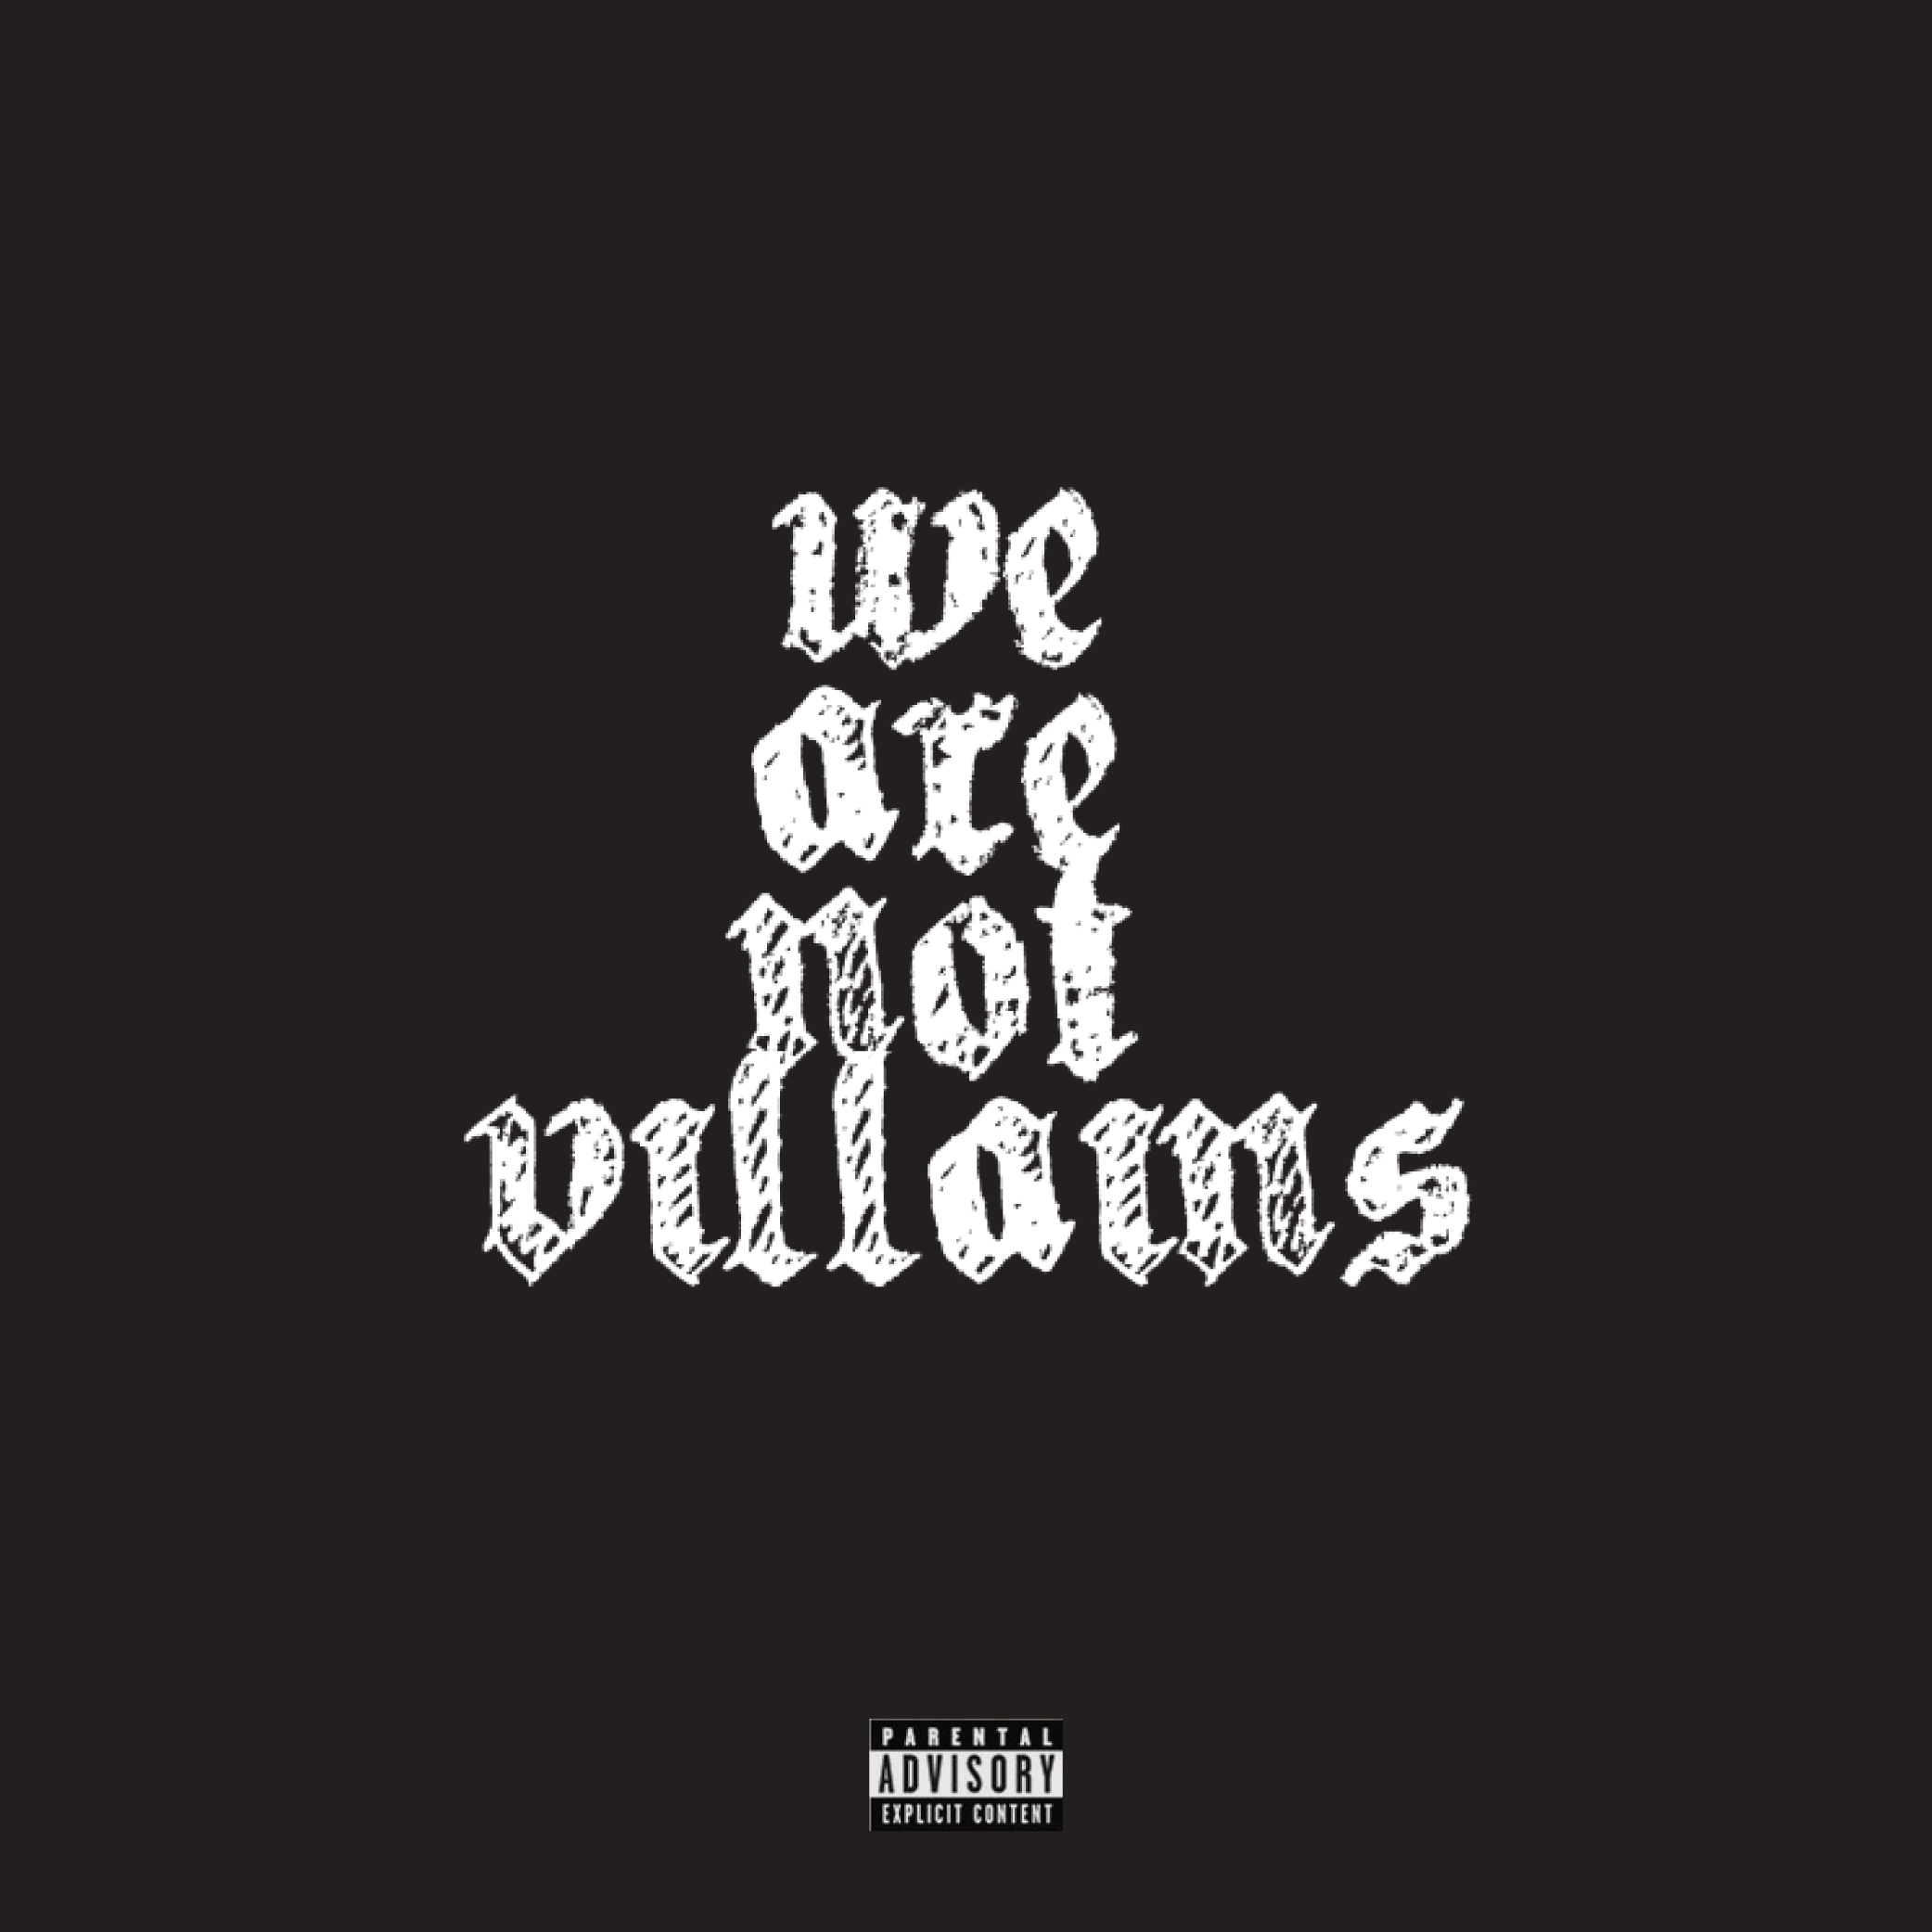 WE ARE NOT VILLAINS